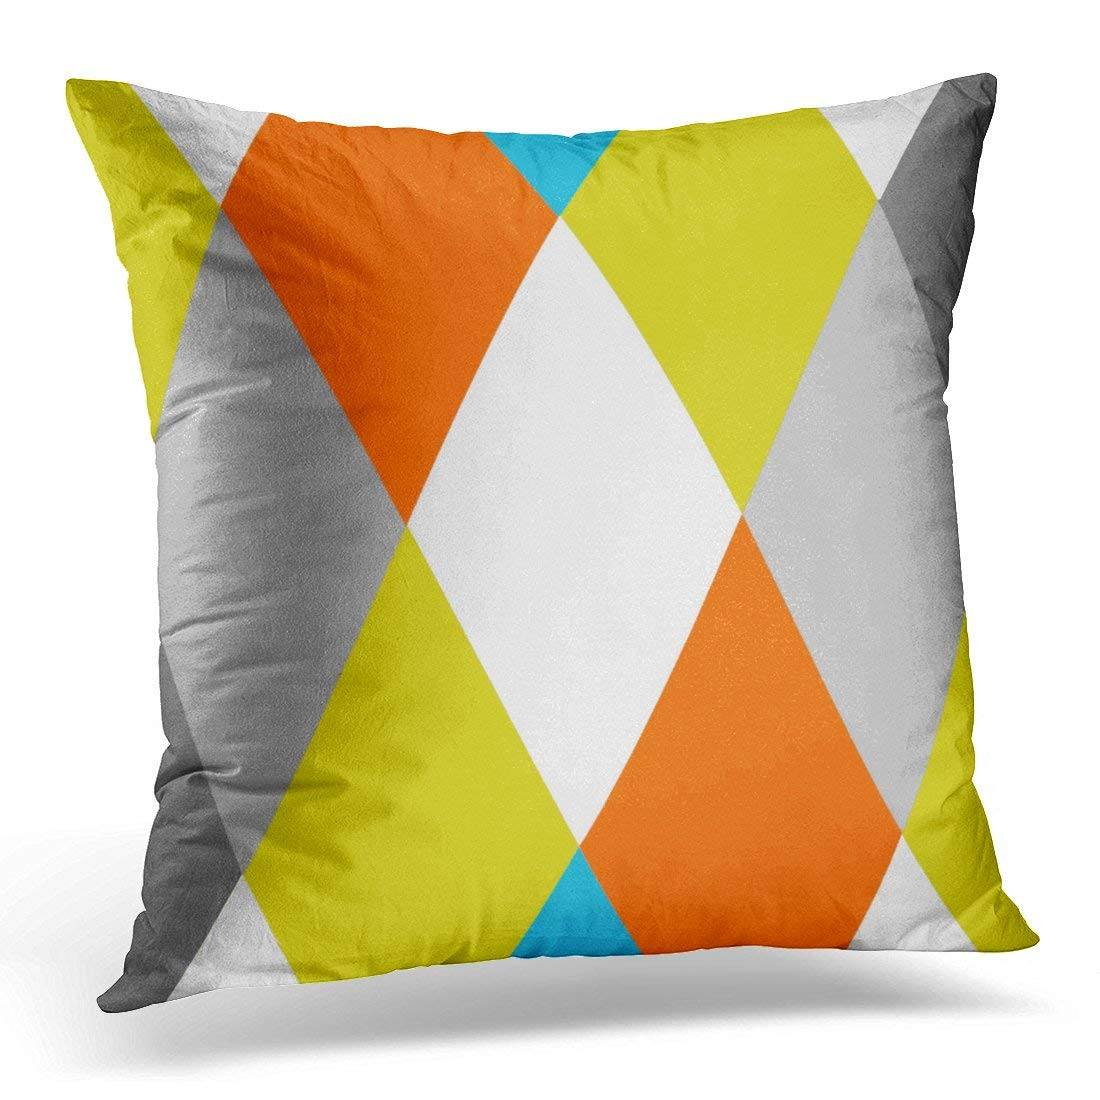 WOPOP Custom Yellow Gray Orange Blue Modern Geometric Colors Pillowcase Cushion Cover 18x18 inches